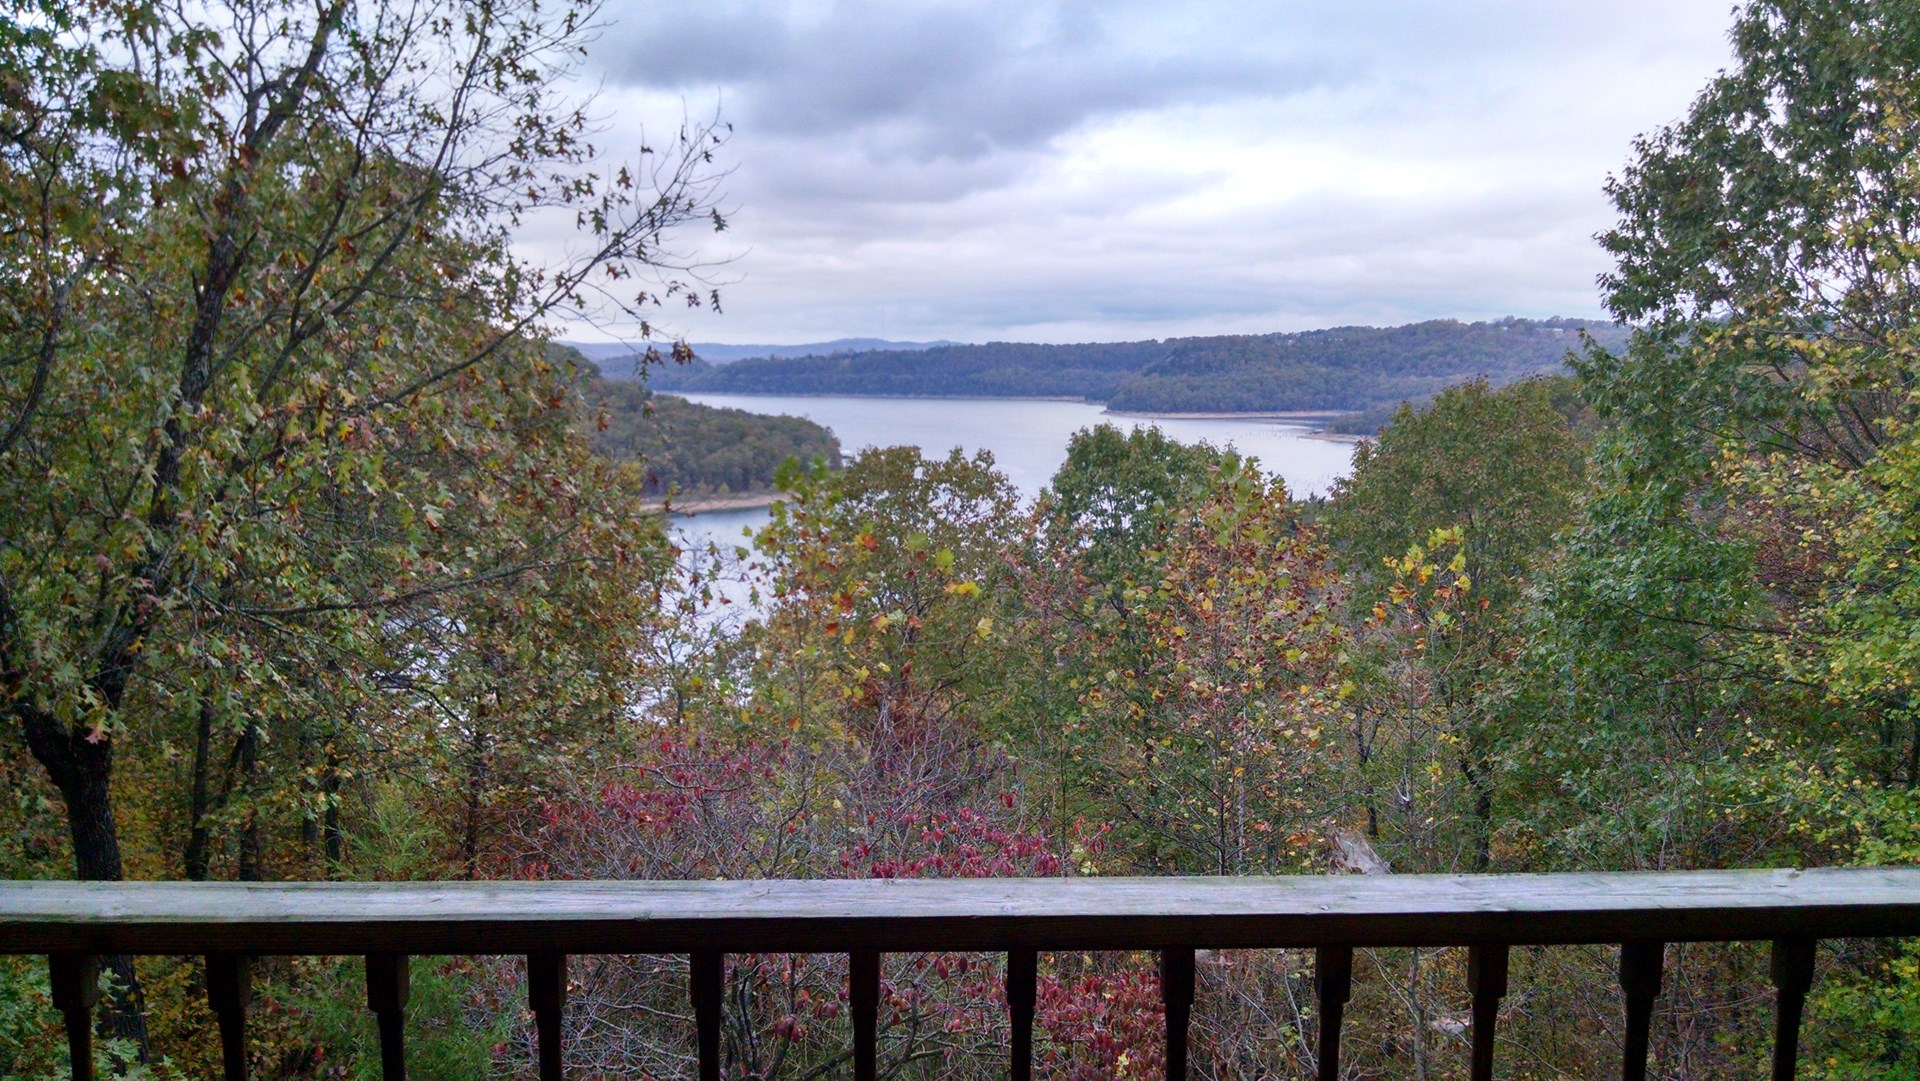 Beaver Lake view home and land for sale near Eureka Springs